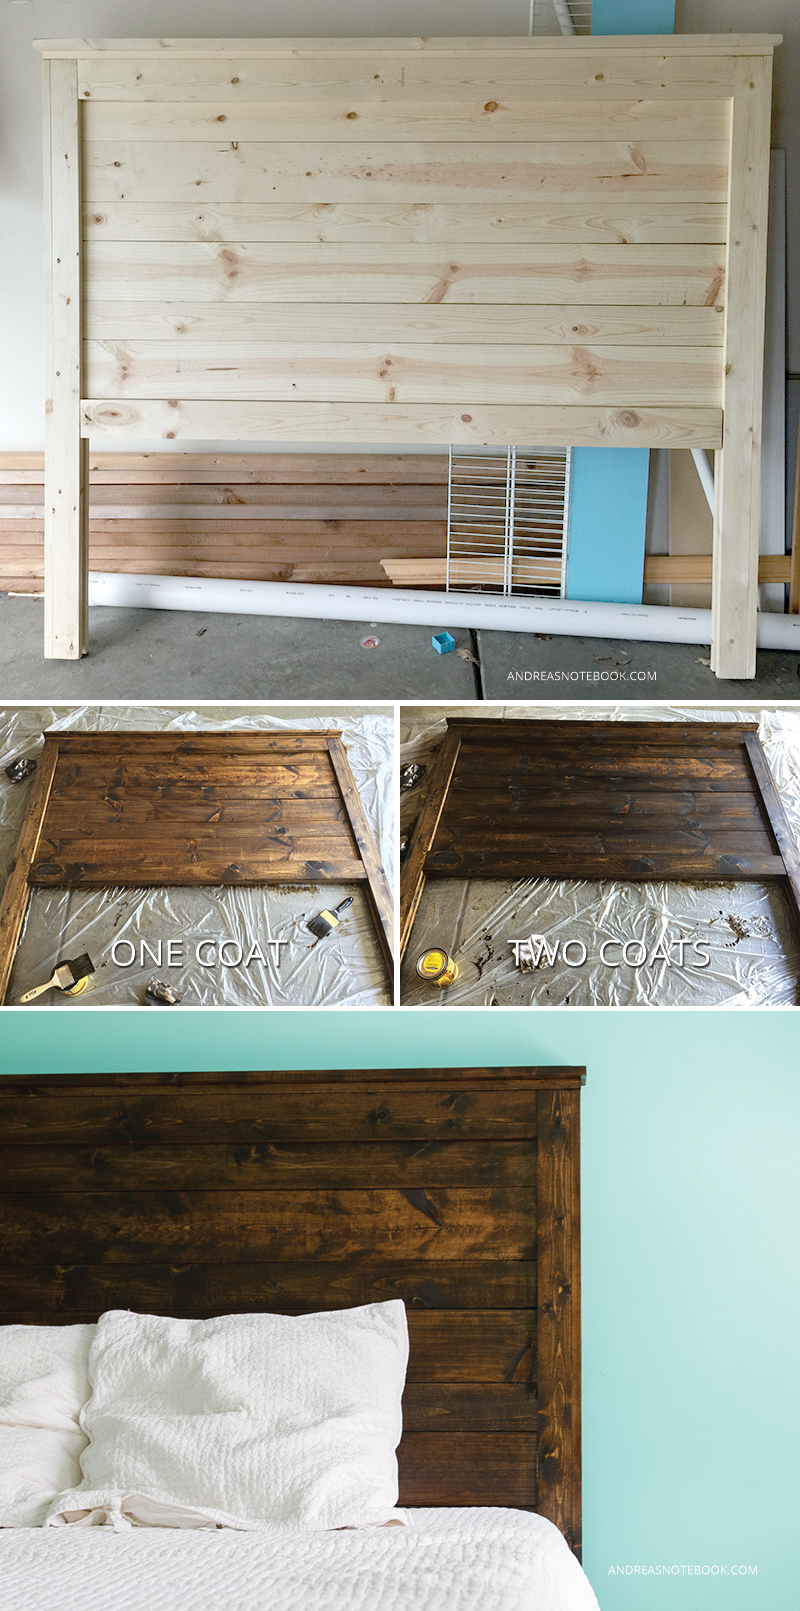 How to make a diy rustic headboard Make your own headboard